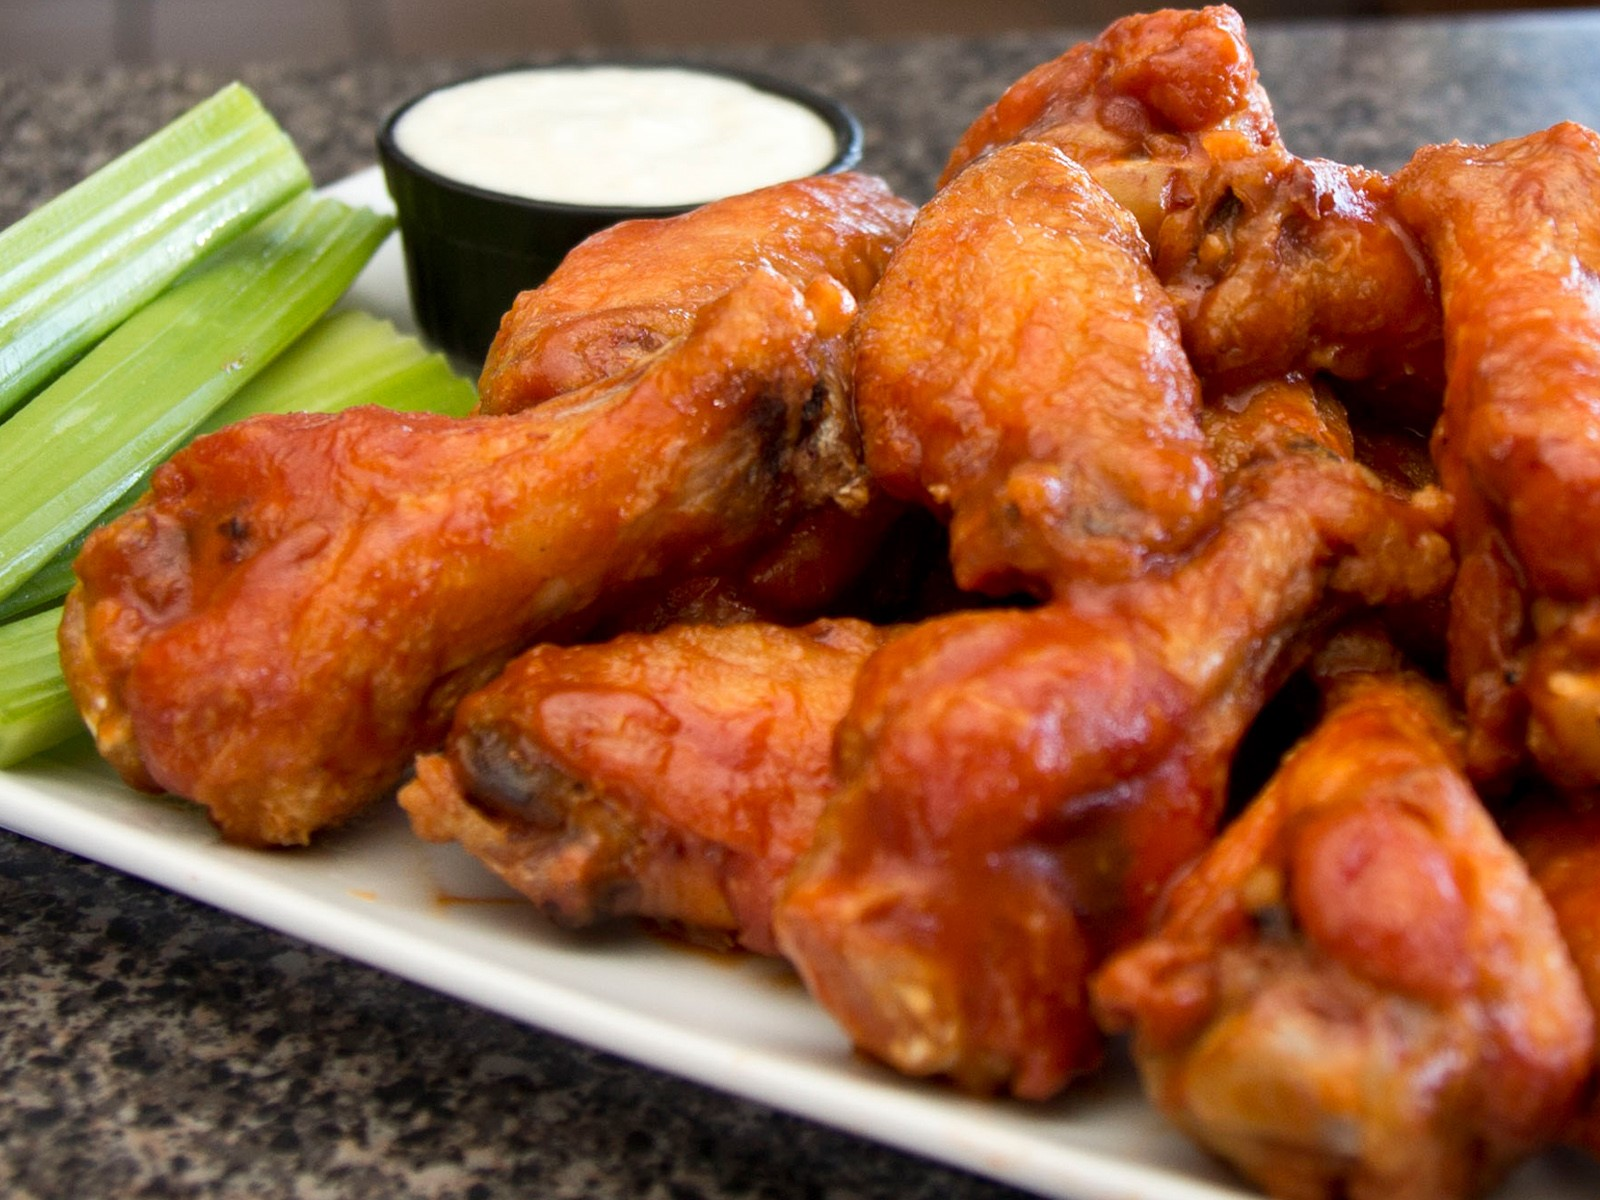 Chicken wings covered in buffalo sauce next to celary and blue cheese